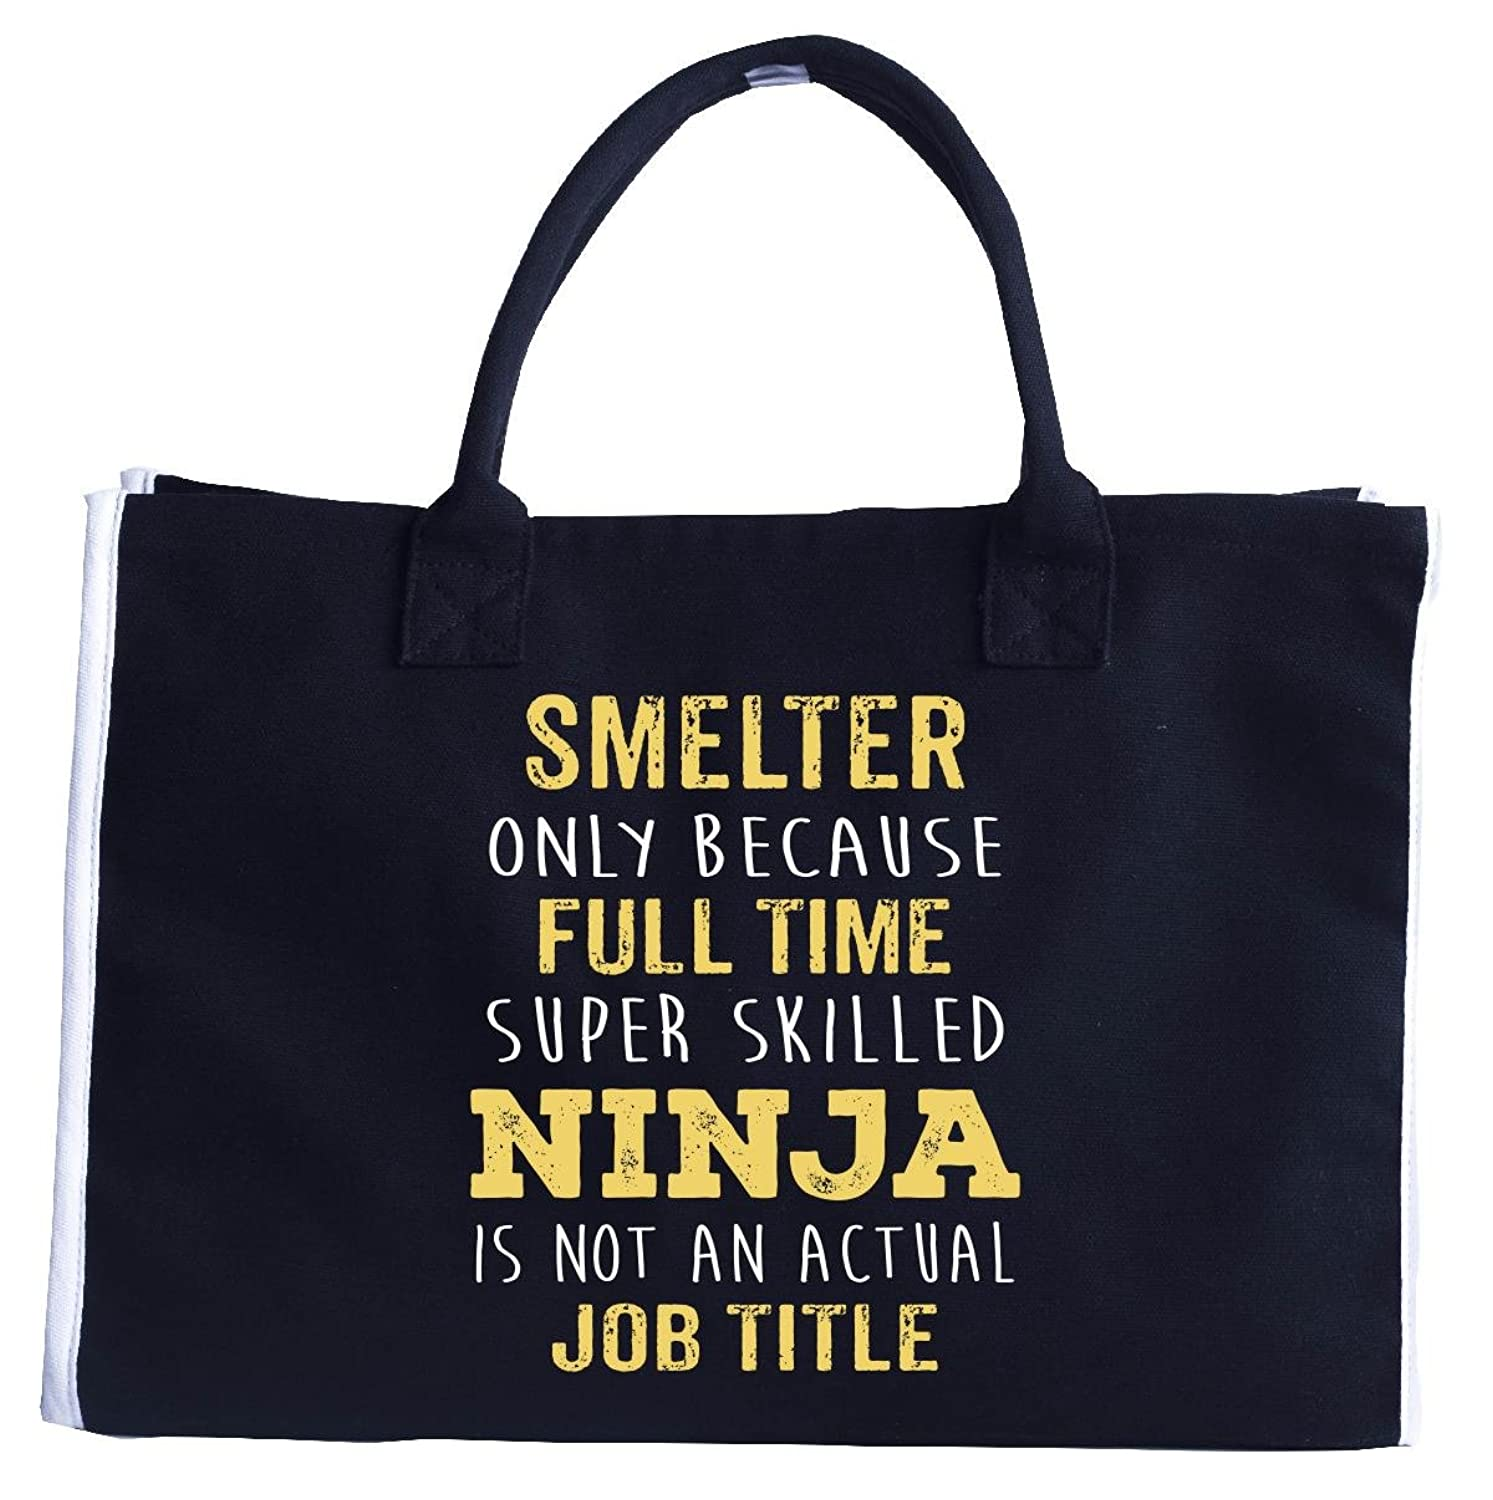 Best Gift Idea For A Super Skilled Ninja Smelter - Fashion Tote Bag